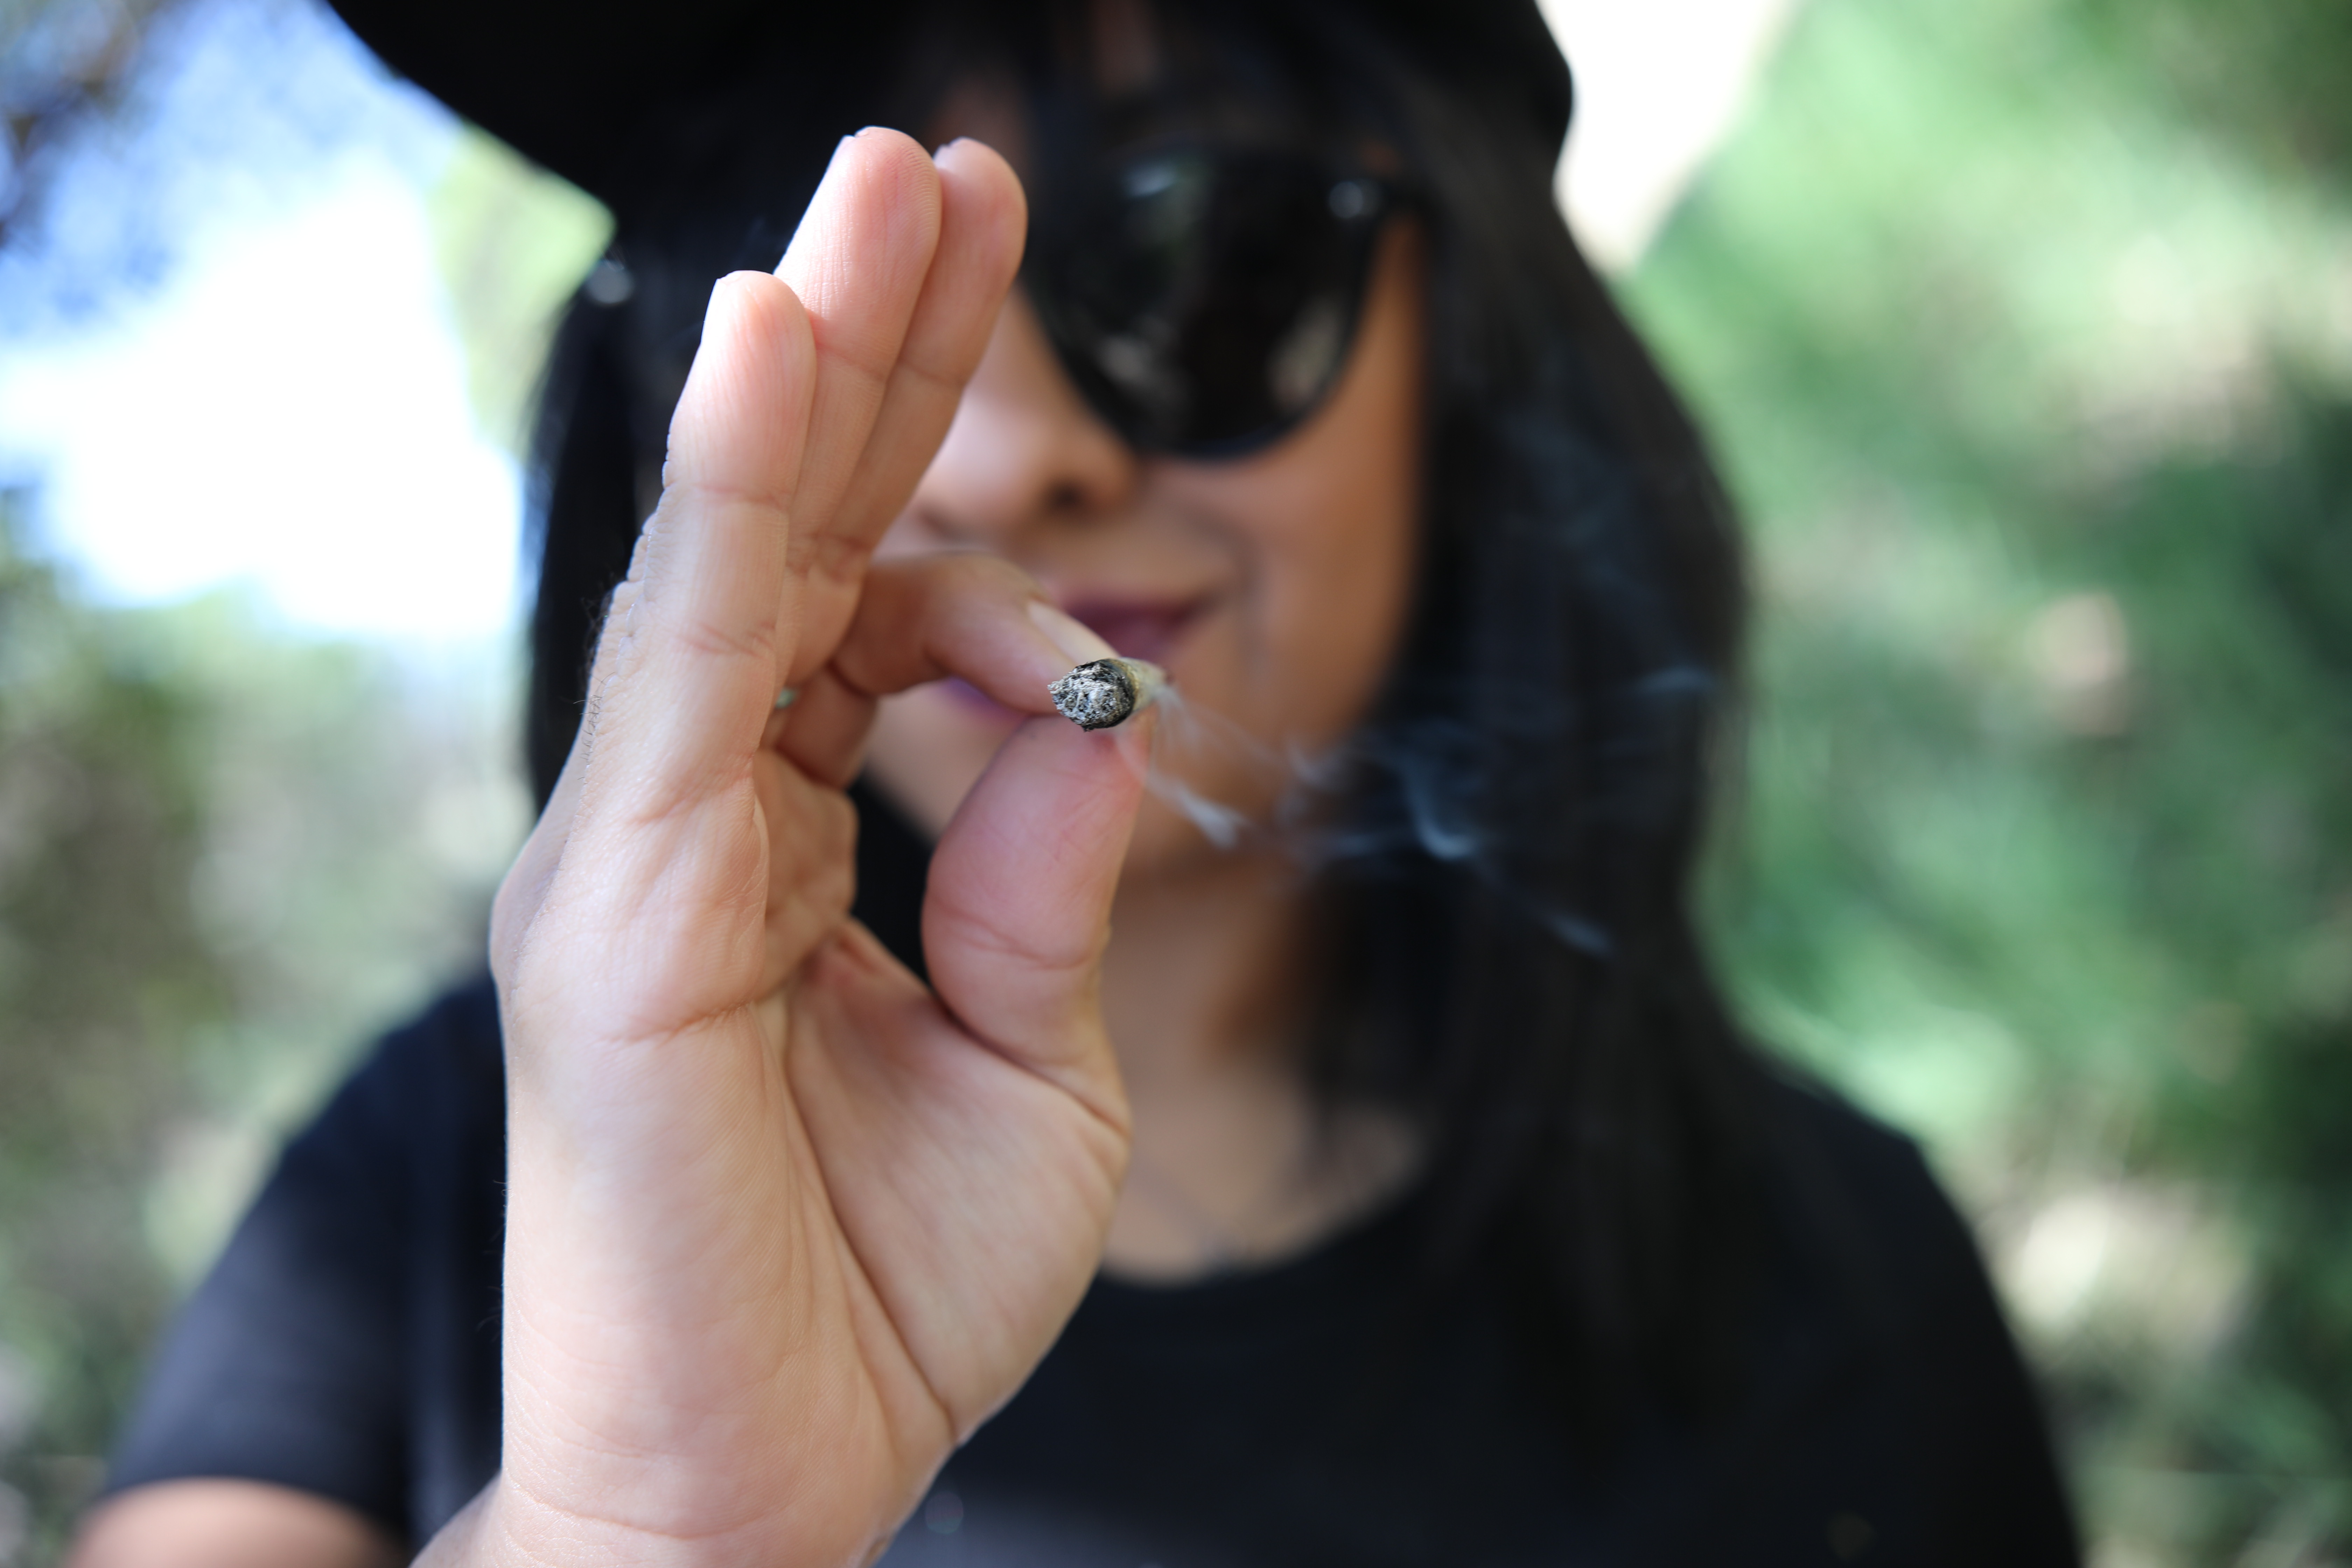 """A woman smokes from a cannabis cigarette, also known as a """"joint."""" New laws allow for personal use of recreational cannabis in California for people 21 and older, but federal laws and policies still classify cannabis in the top drug enforcement priority. Photo: Rachael Mattice"""